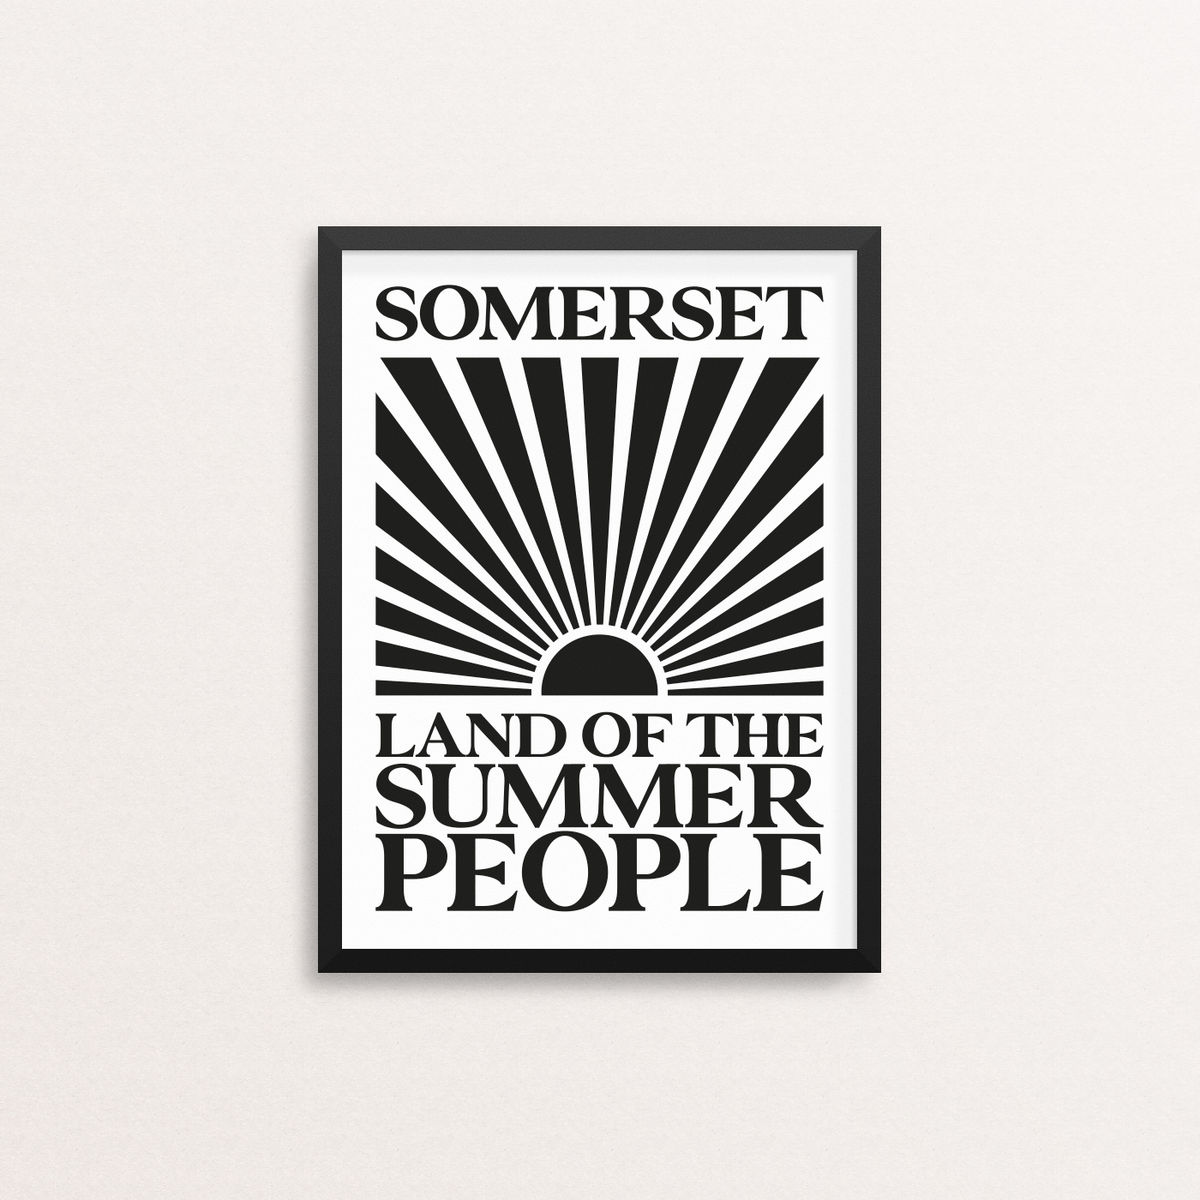 Somerset - Land of the Summer People - Open Edition Screen Print - product image